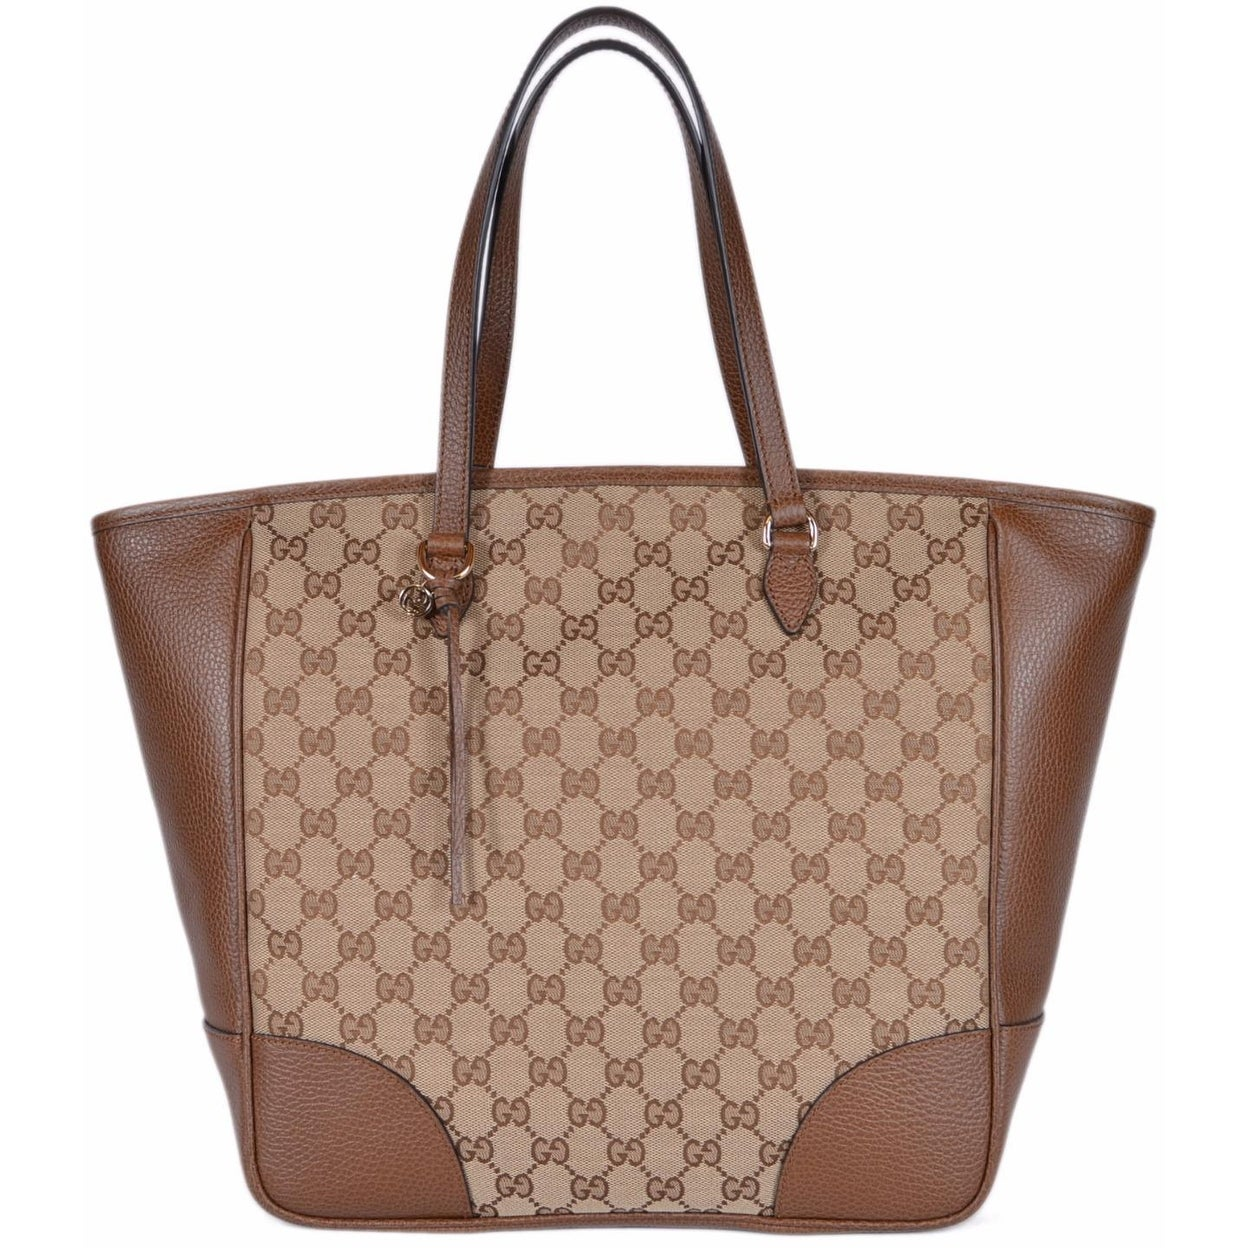 394c49cf6 Gucci Women's 449242 Beige Brown Large Bree GG Guccissima Purse Handbag Tote  - Beige/Brown - 18